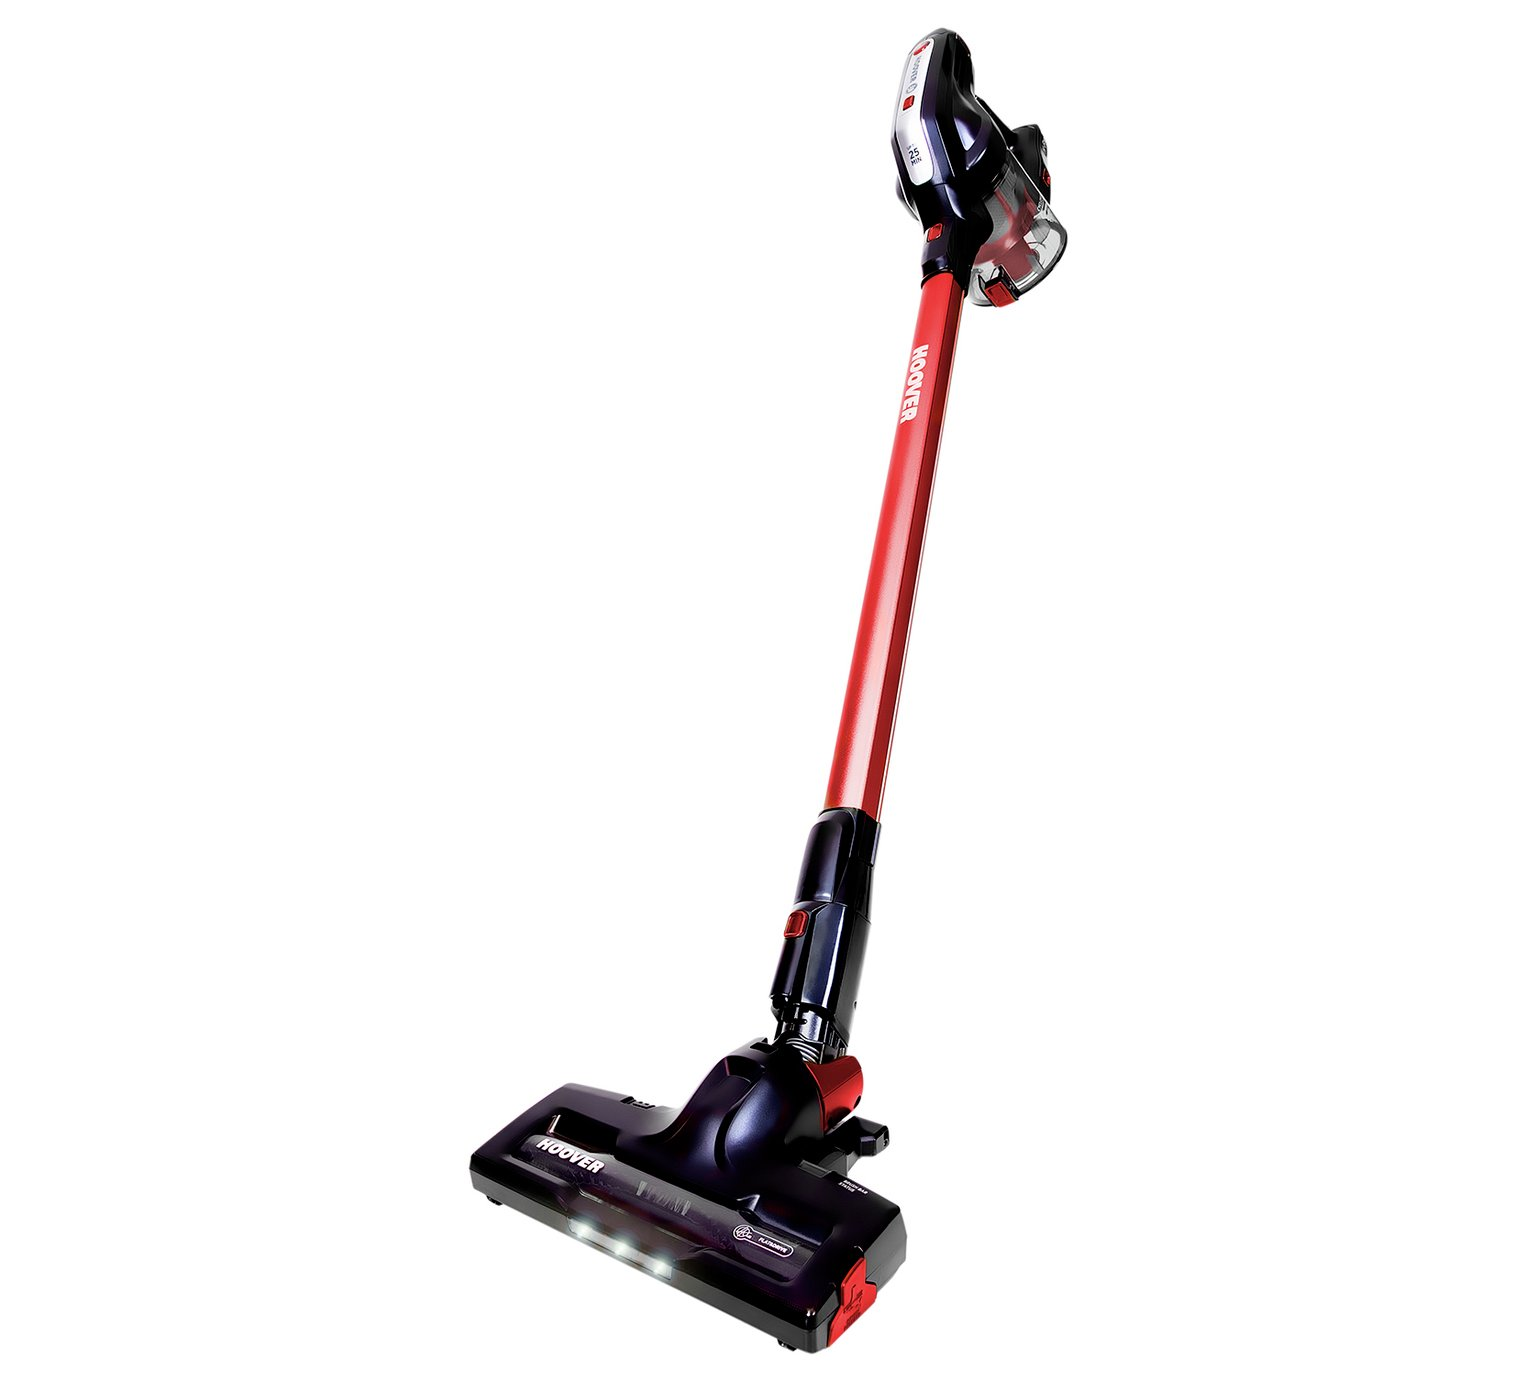 Hoover HF18RH H-Free Cordless Vacuum Cleaner